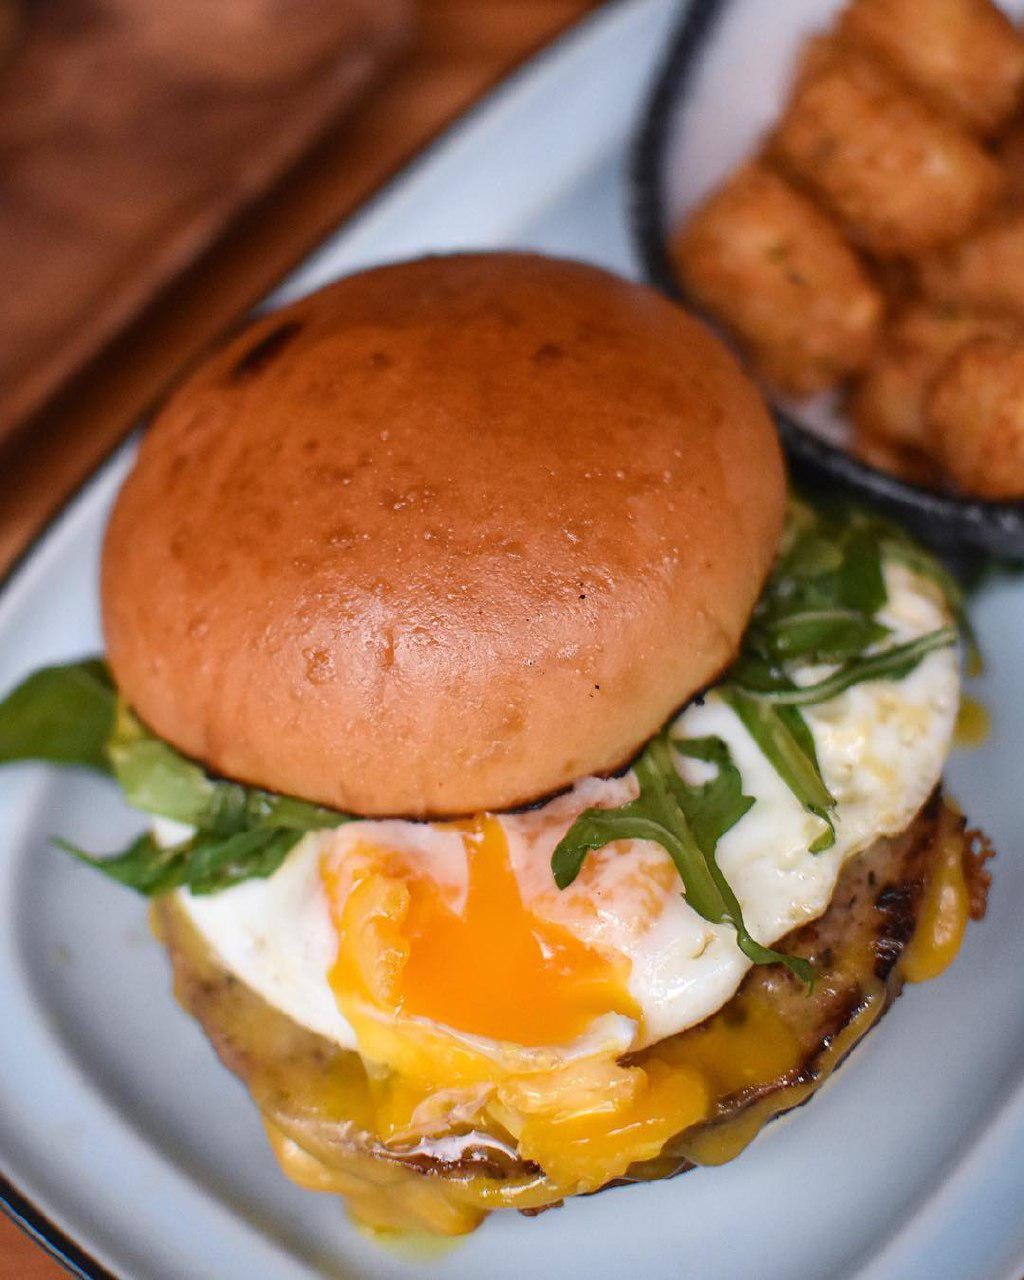 Burger with egg at Three Buns Quayside